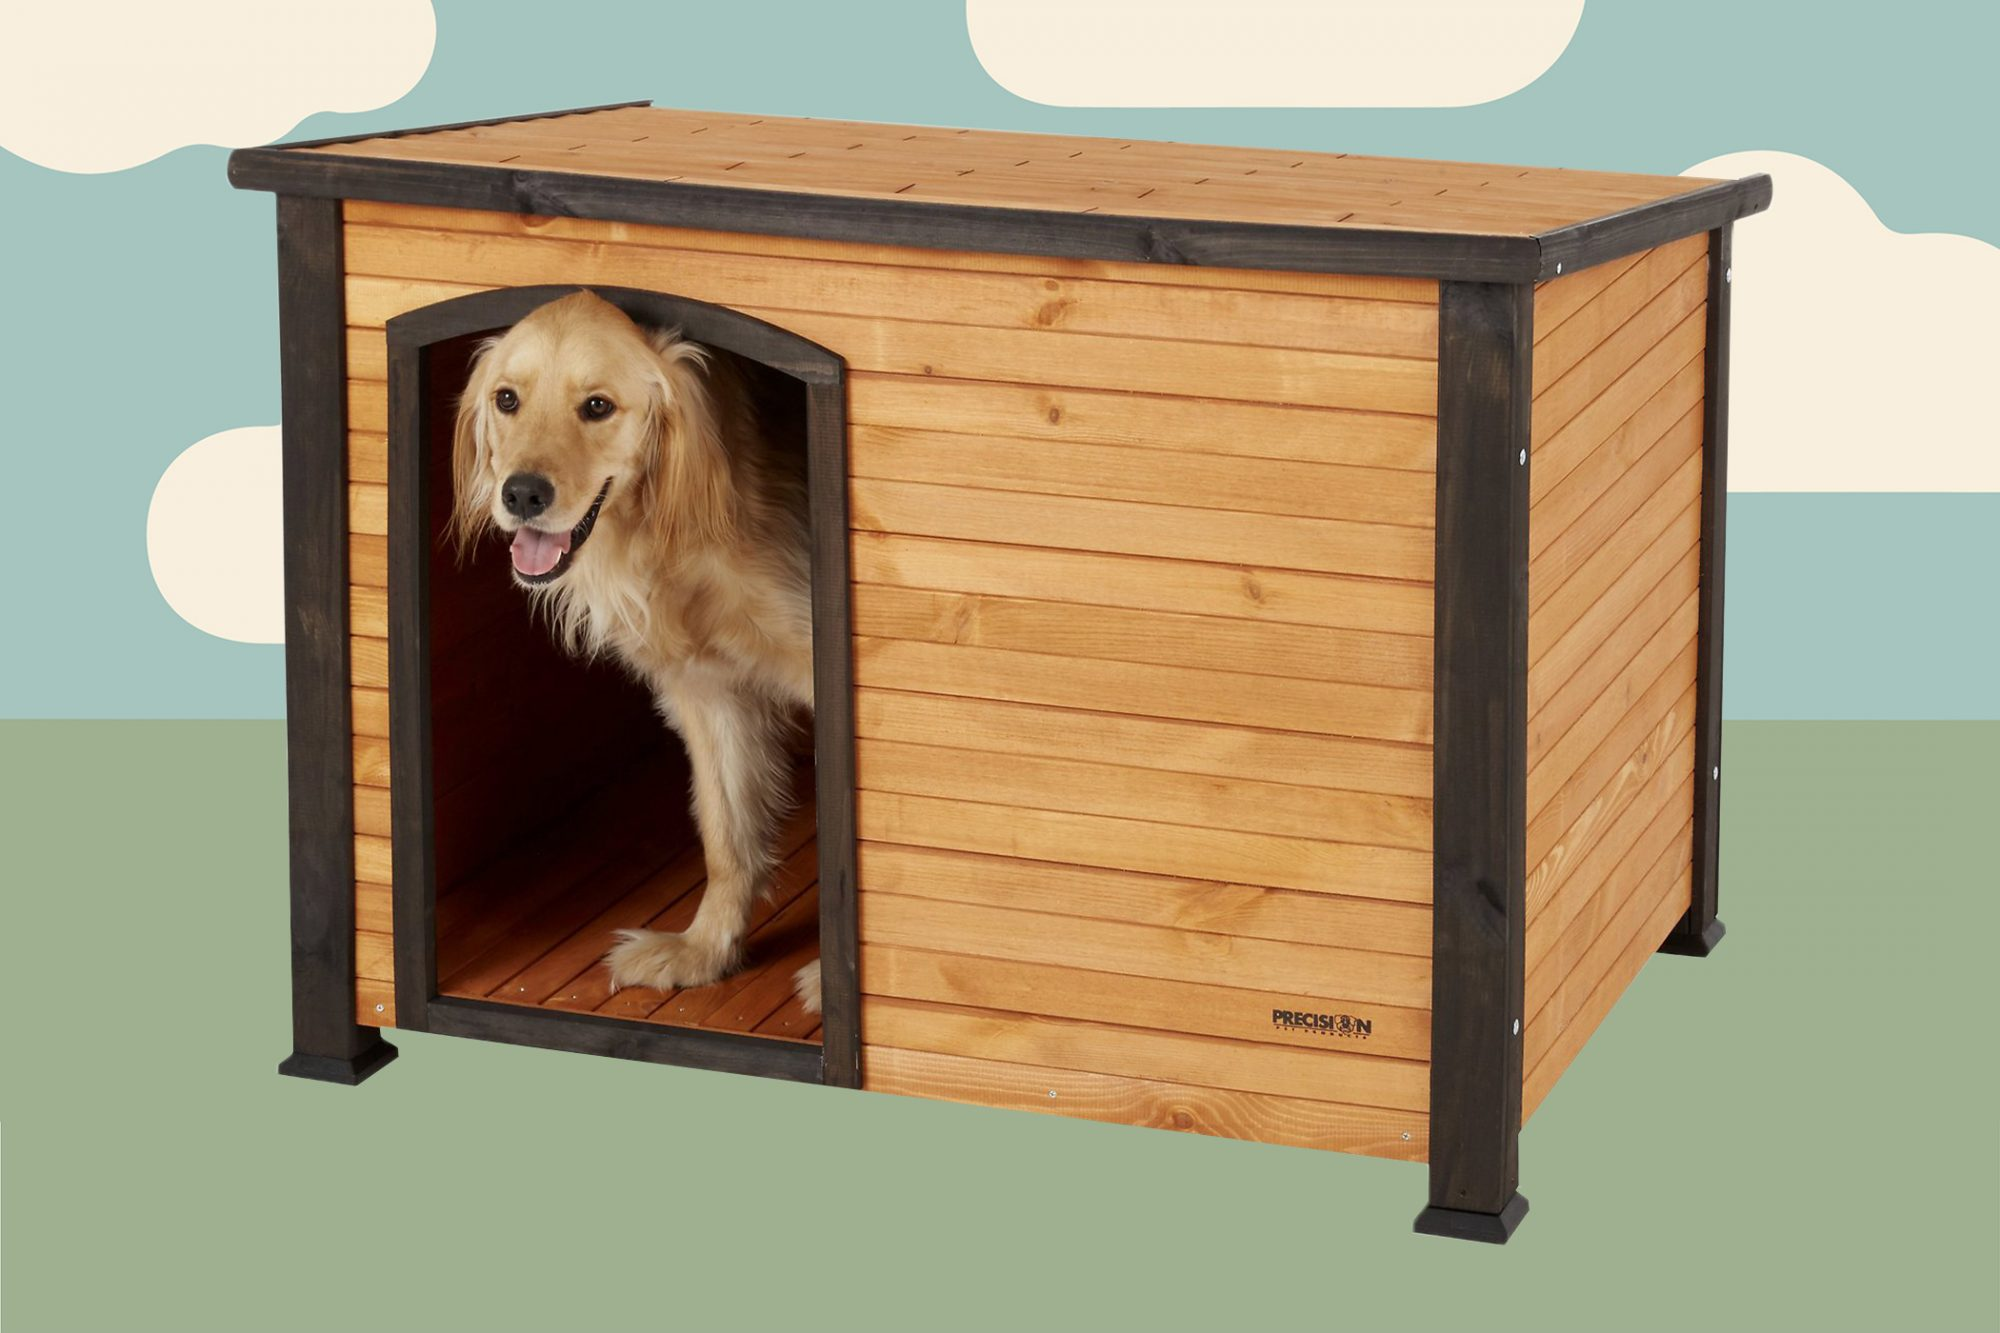 Blonde dog sits happily inside outdoor dog house